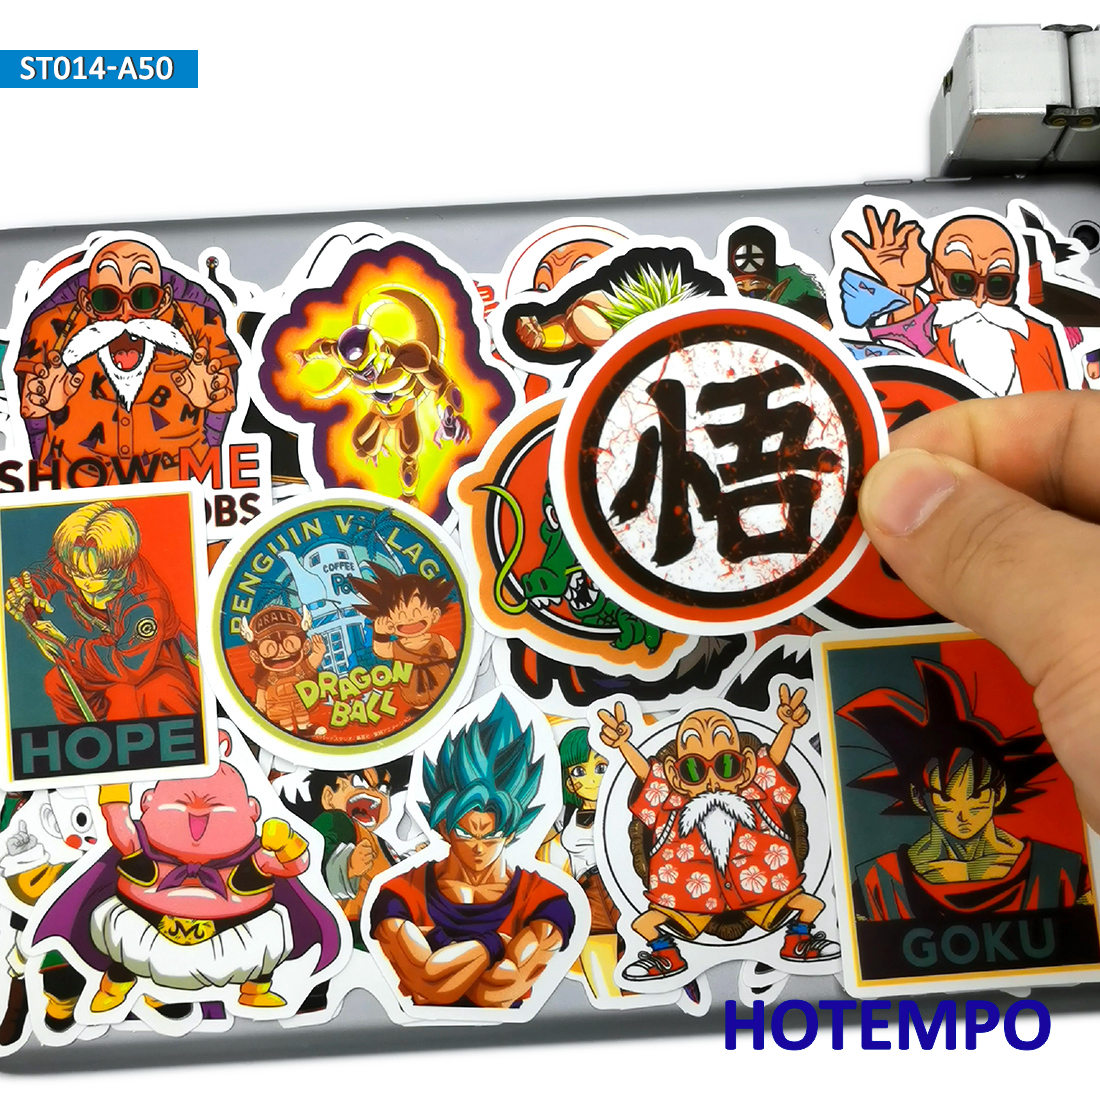 50pcs Not Repeat Anime Goku Dragon Ball Stickers For DIY Mobile Phone Laptop Luggage Suitcase Guitar Skateboard Decal Stickers